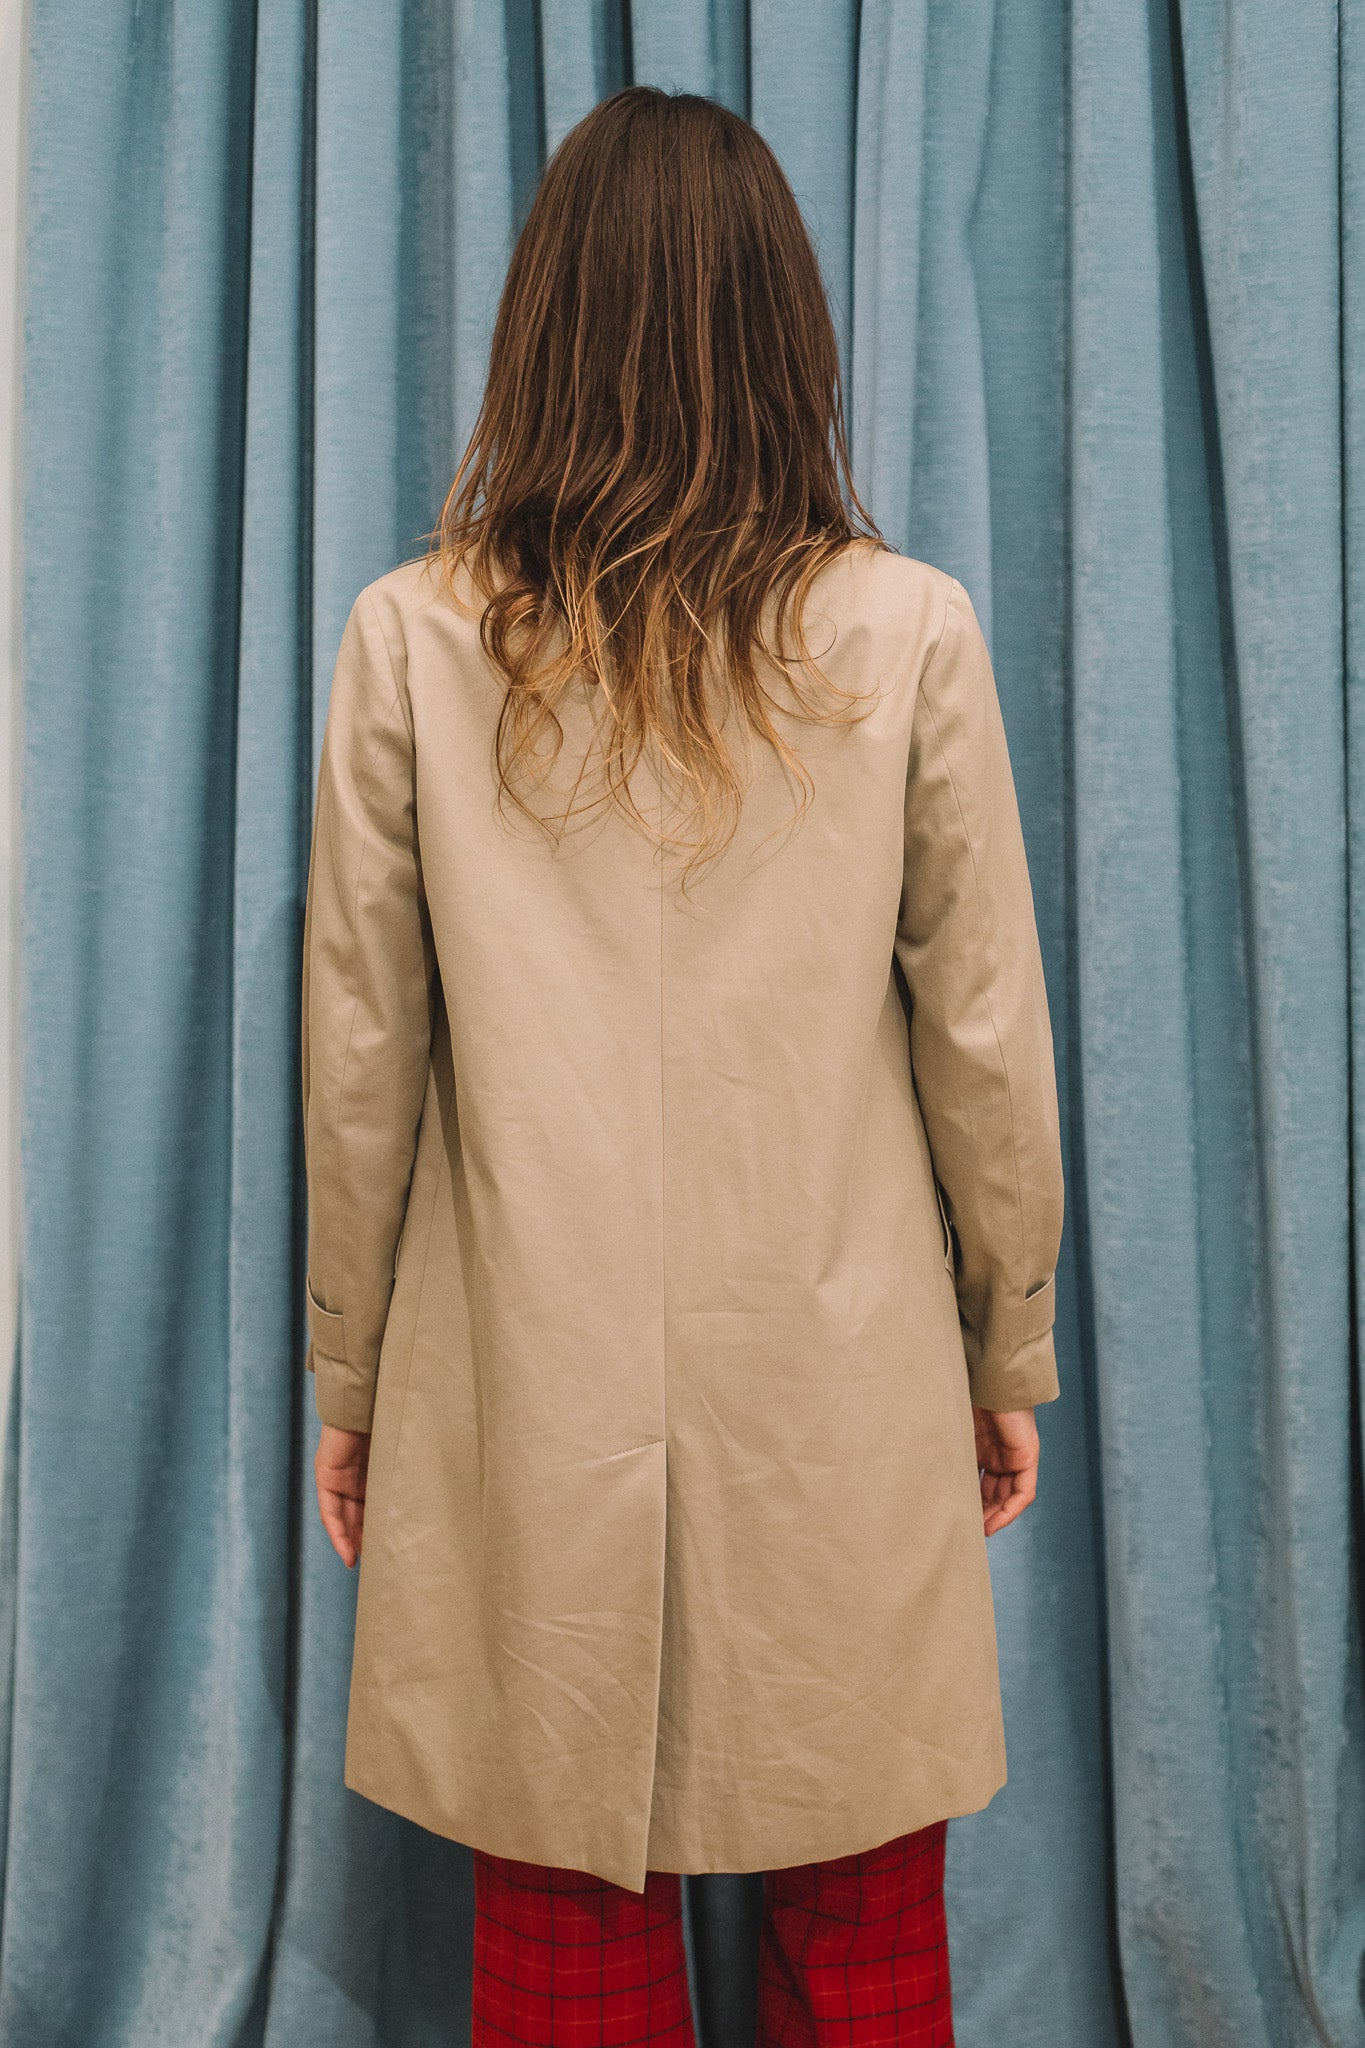 Scandlan trench coat